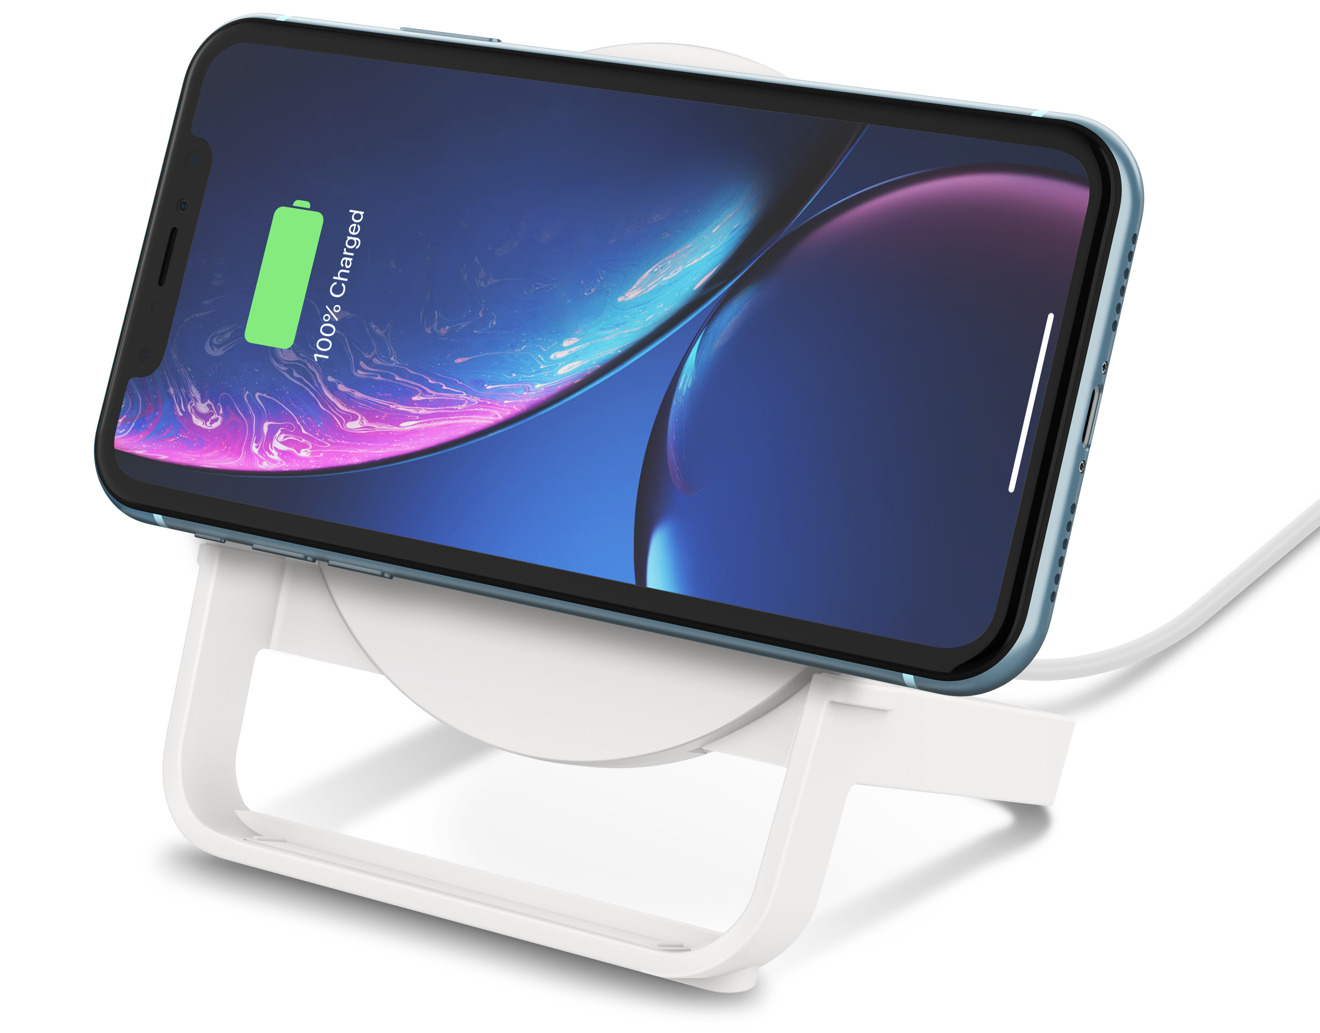 Belkin BoostCharge wireless charging stand